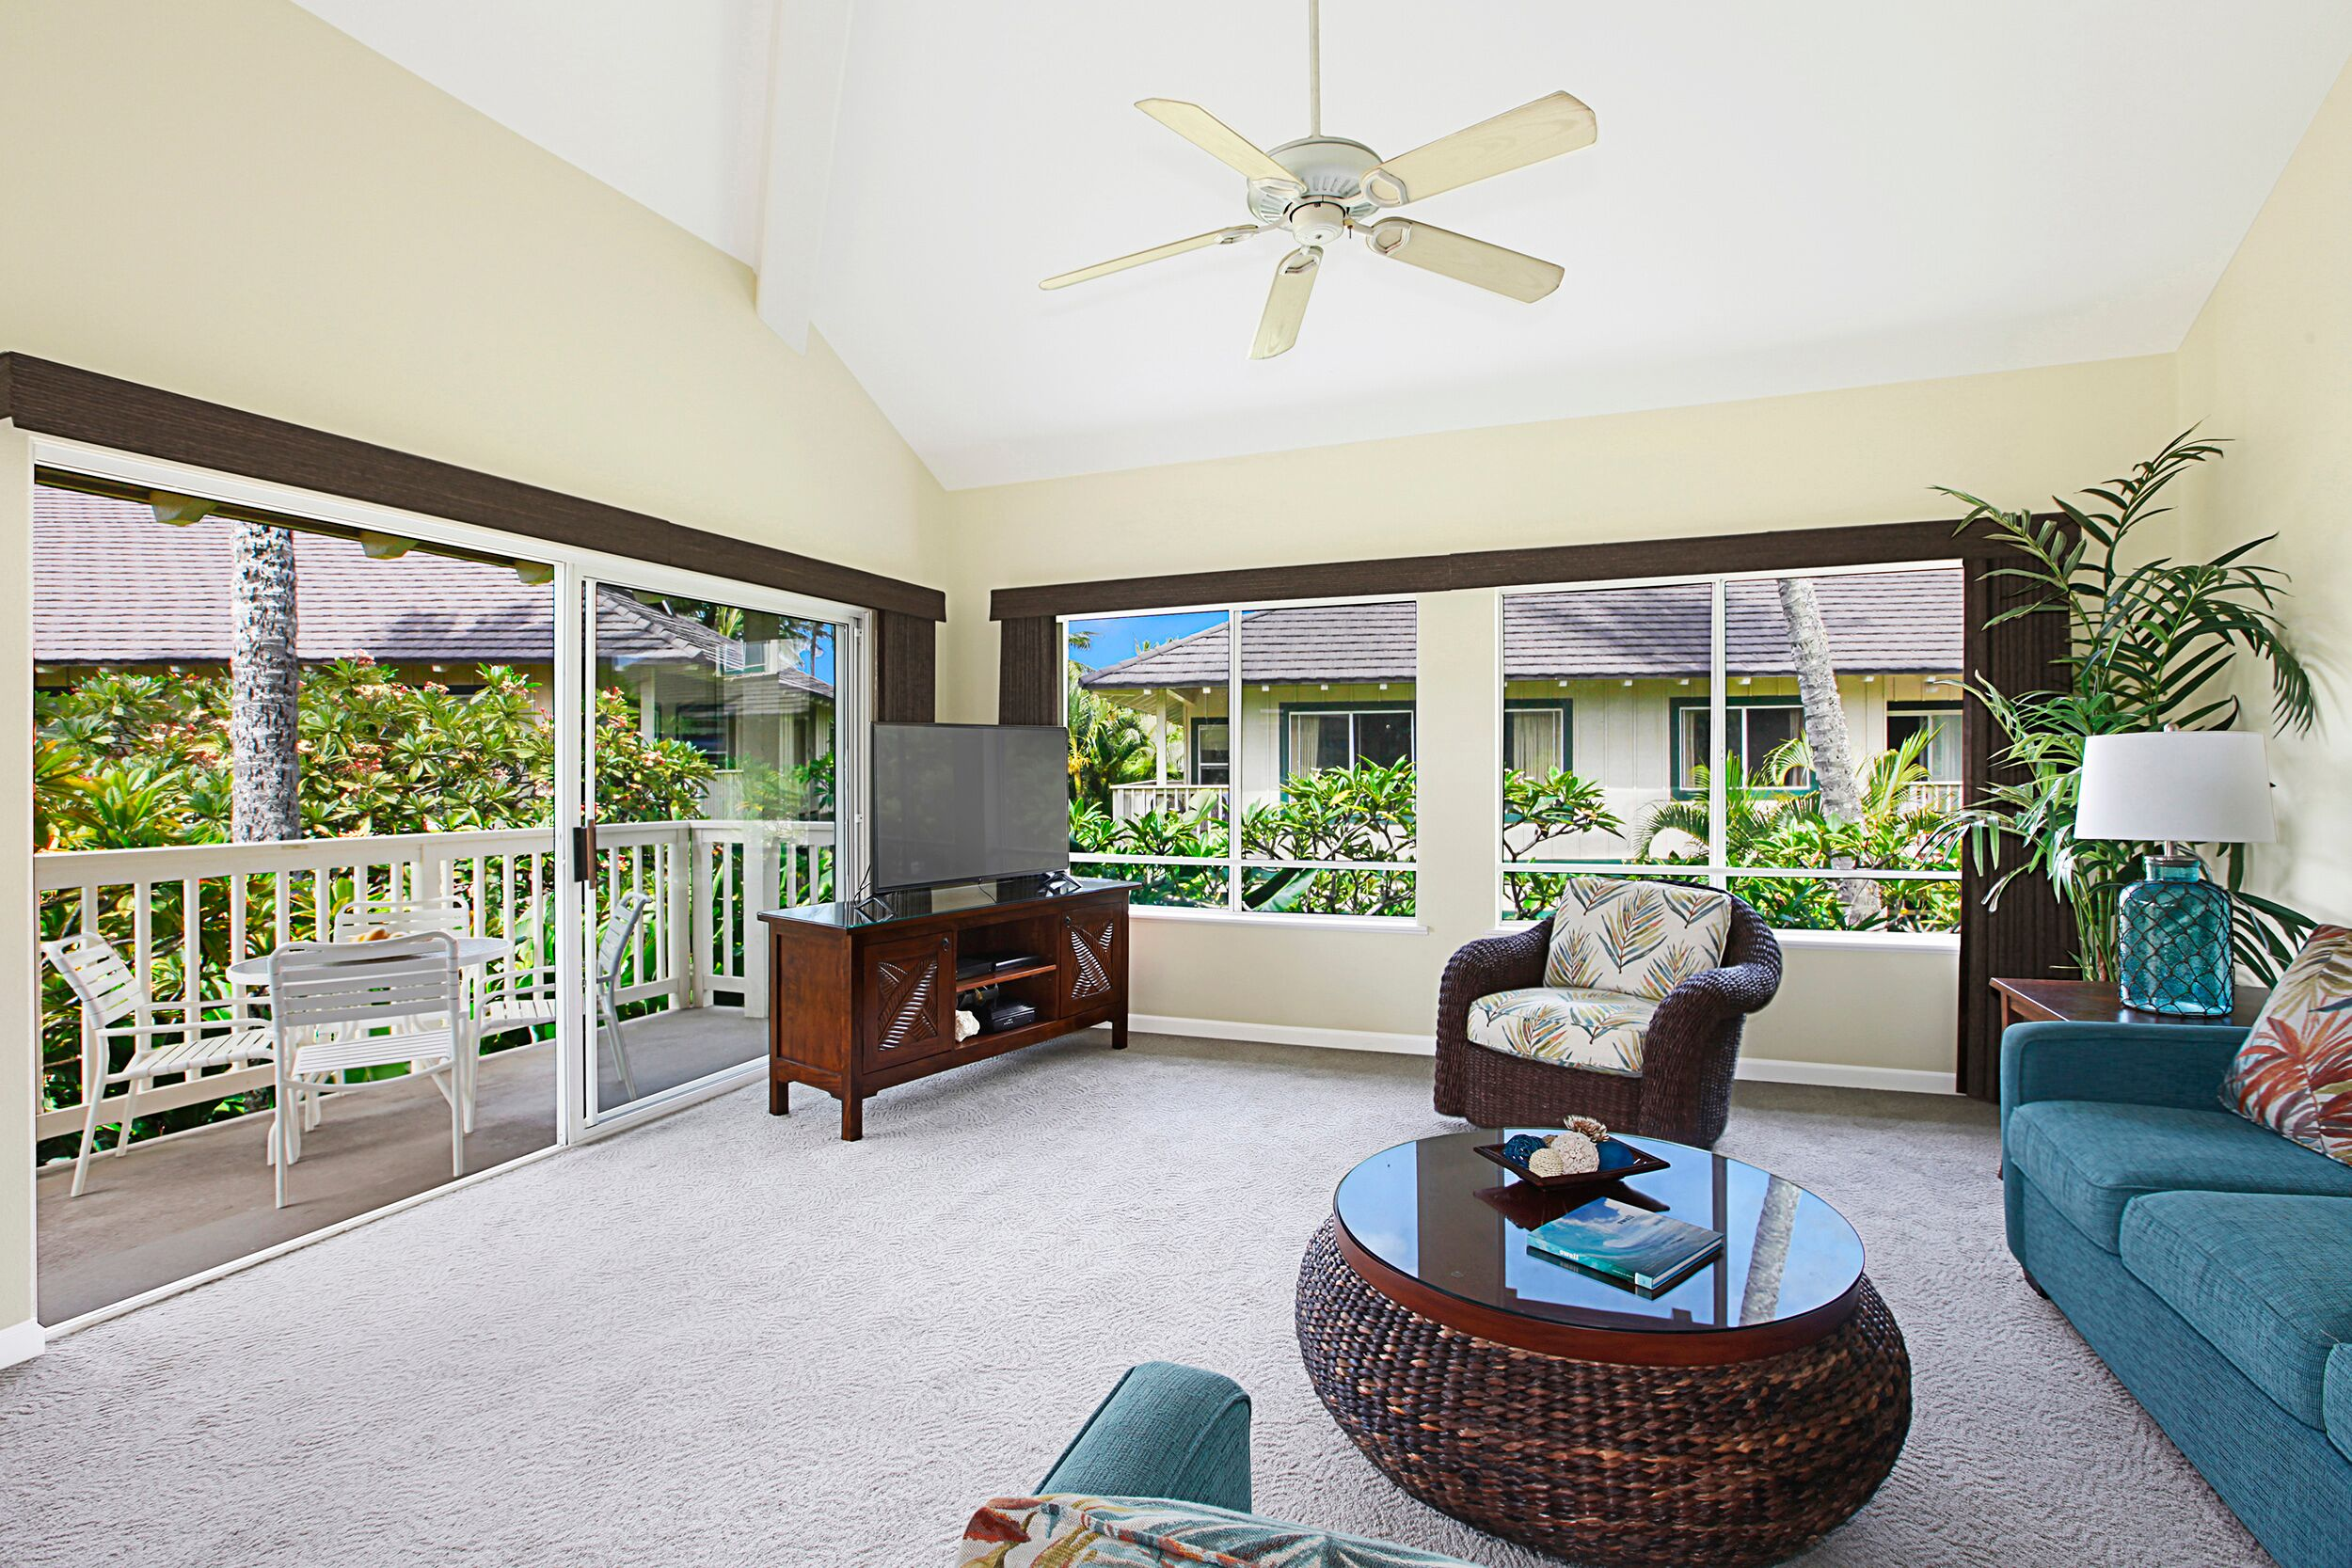 Property Image 2 - Spacious Kauai Retreat Well Suited for Fun Family Getaways